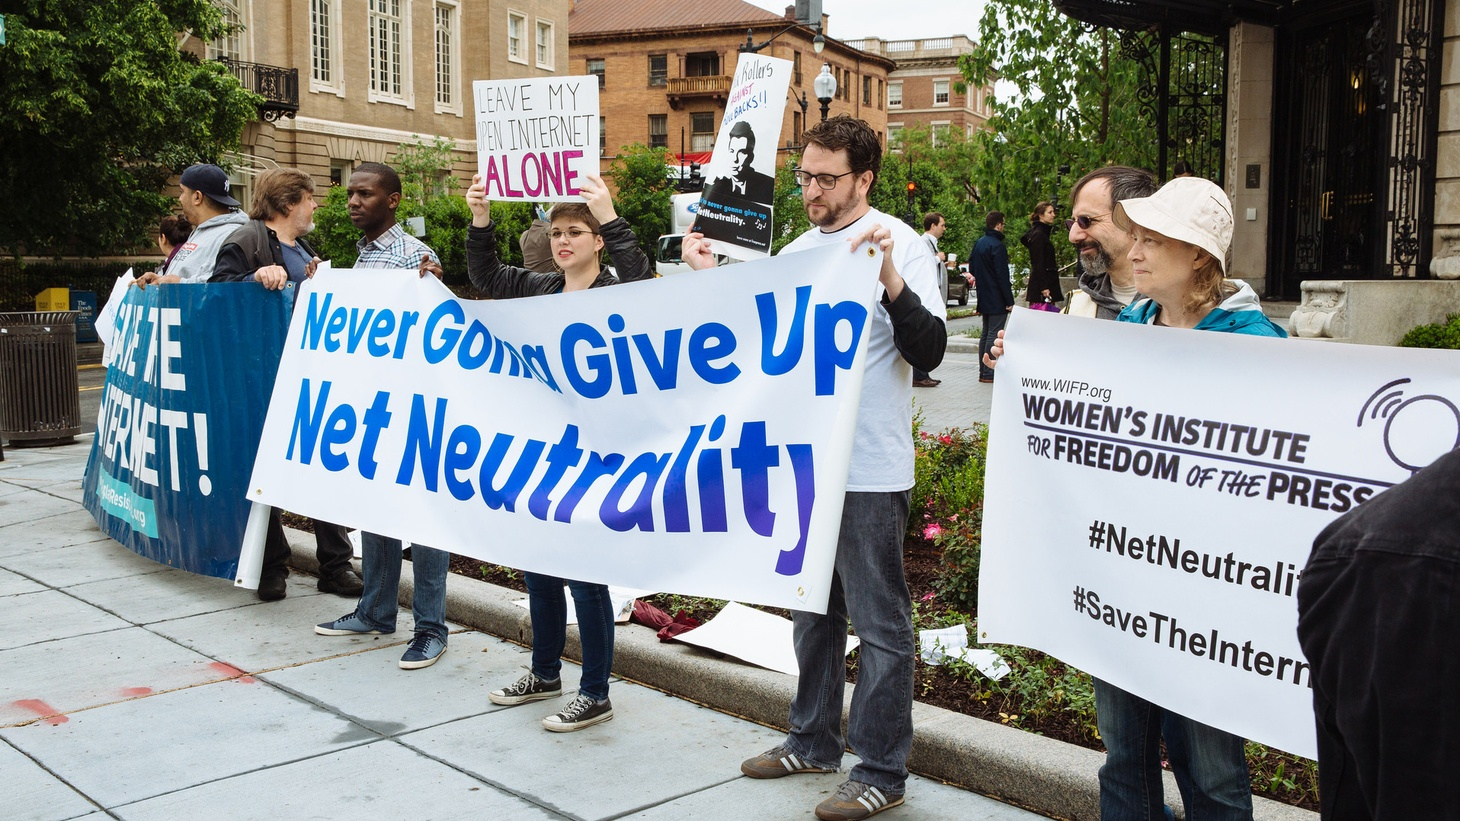 """The FCC's received 22 million comments on its proposal to eliminate """"net neutrality"""" for Internet access. Now the public comment period's over, and a final decision is likely to come very soon. We hear why a regulatory issue has generated so much interest and what the potential consequences might be for Internet users every day."""